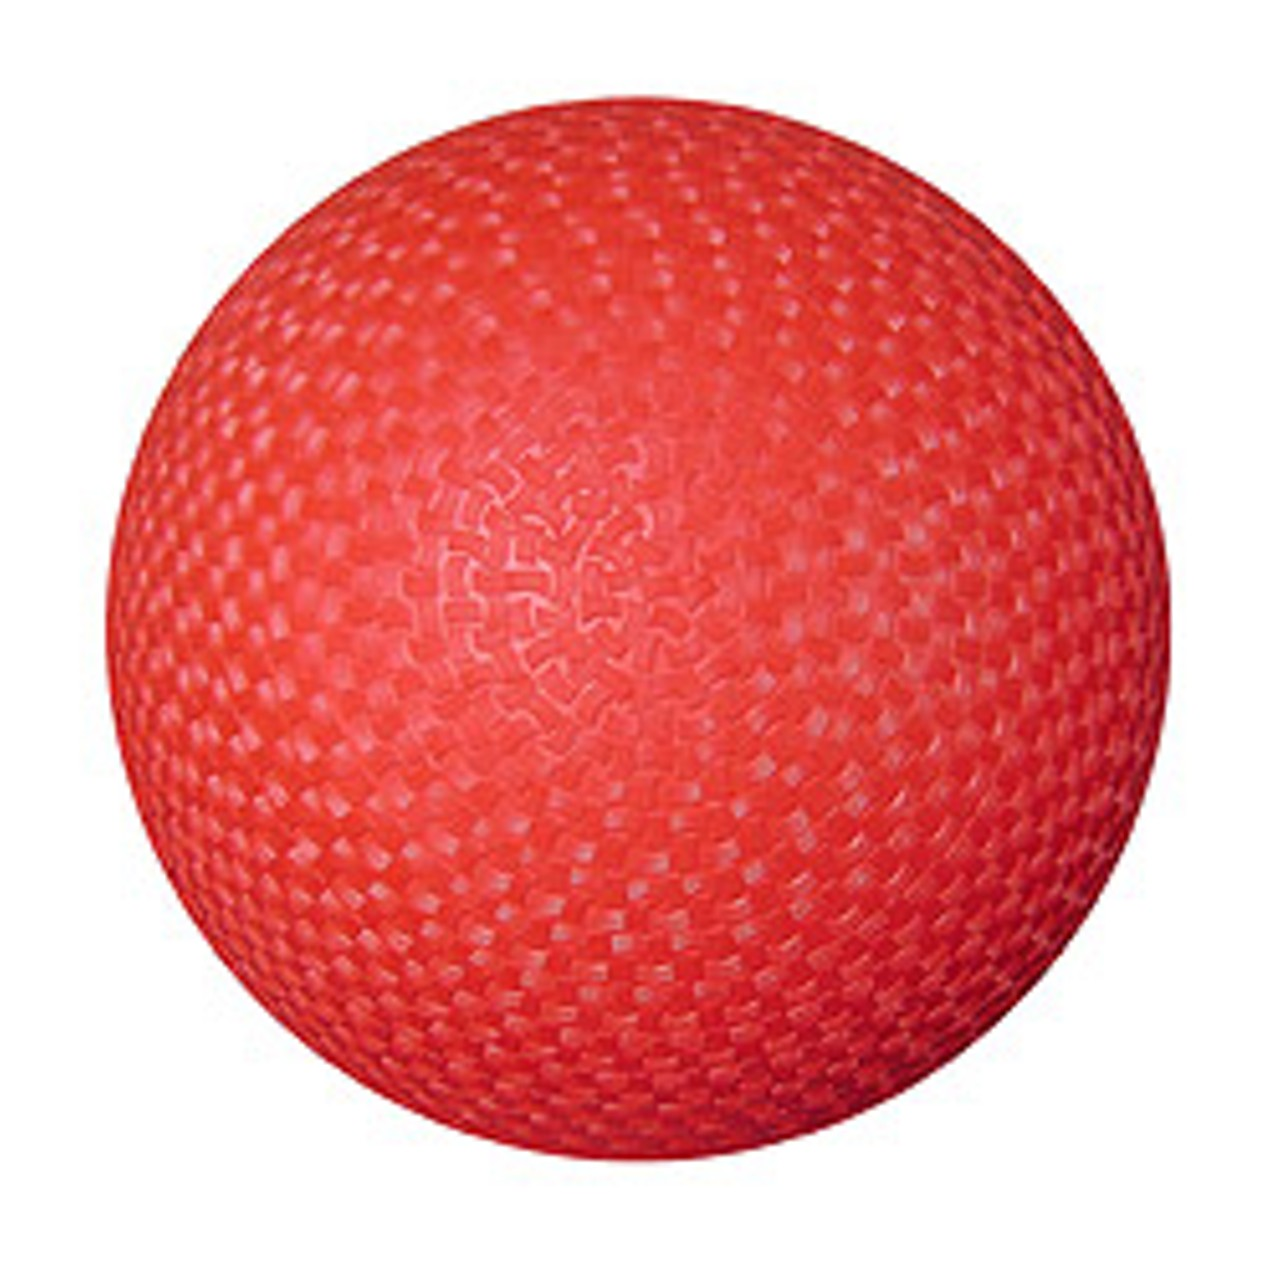 casa kickball tournament tobey park fund raisers  sports   fitness memphis news and events dodgeball clipart free dodgeball clipart images